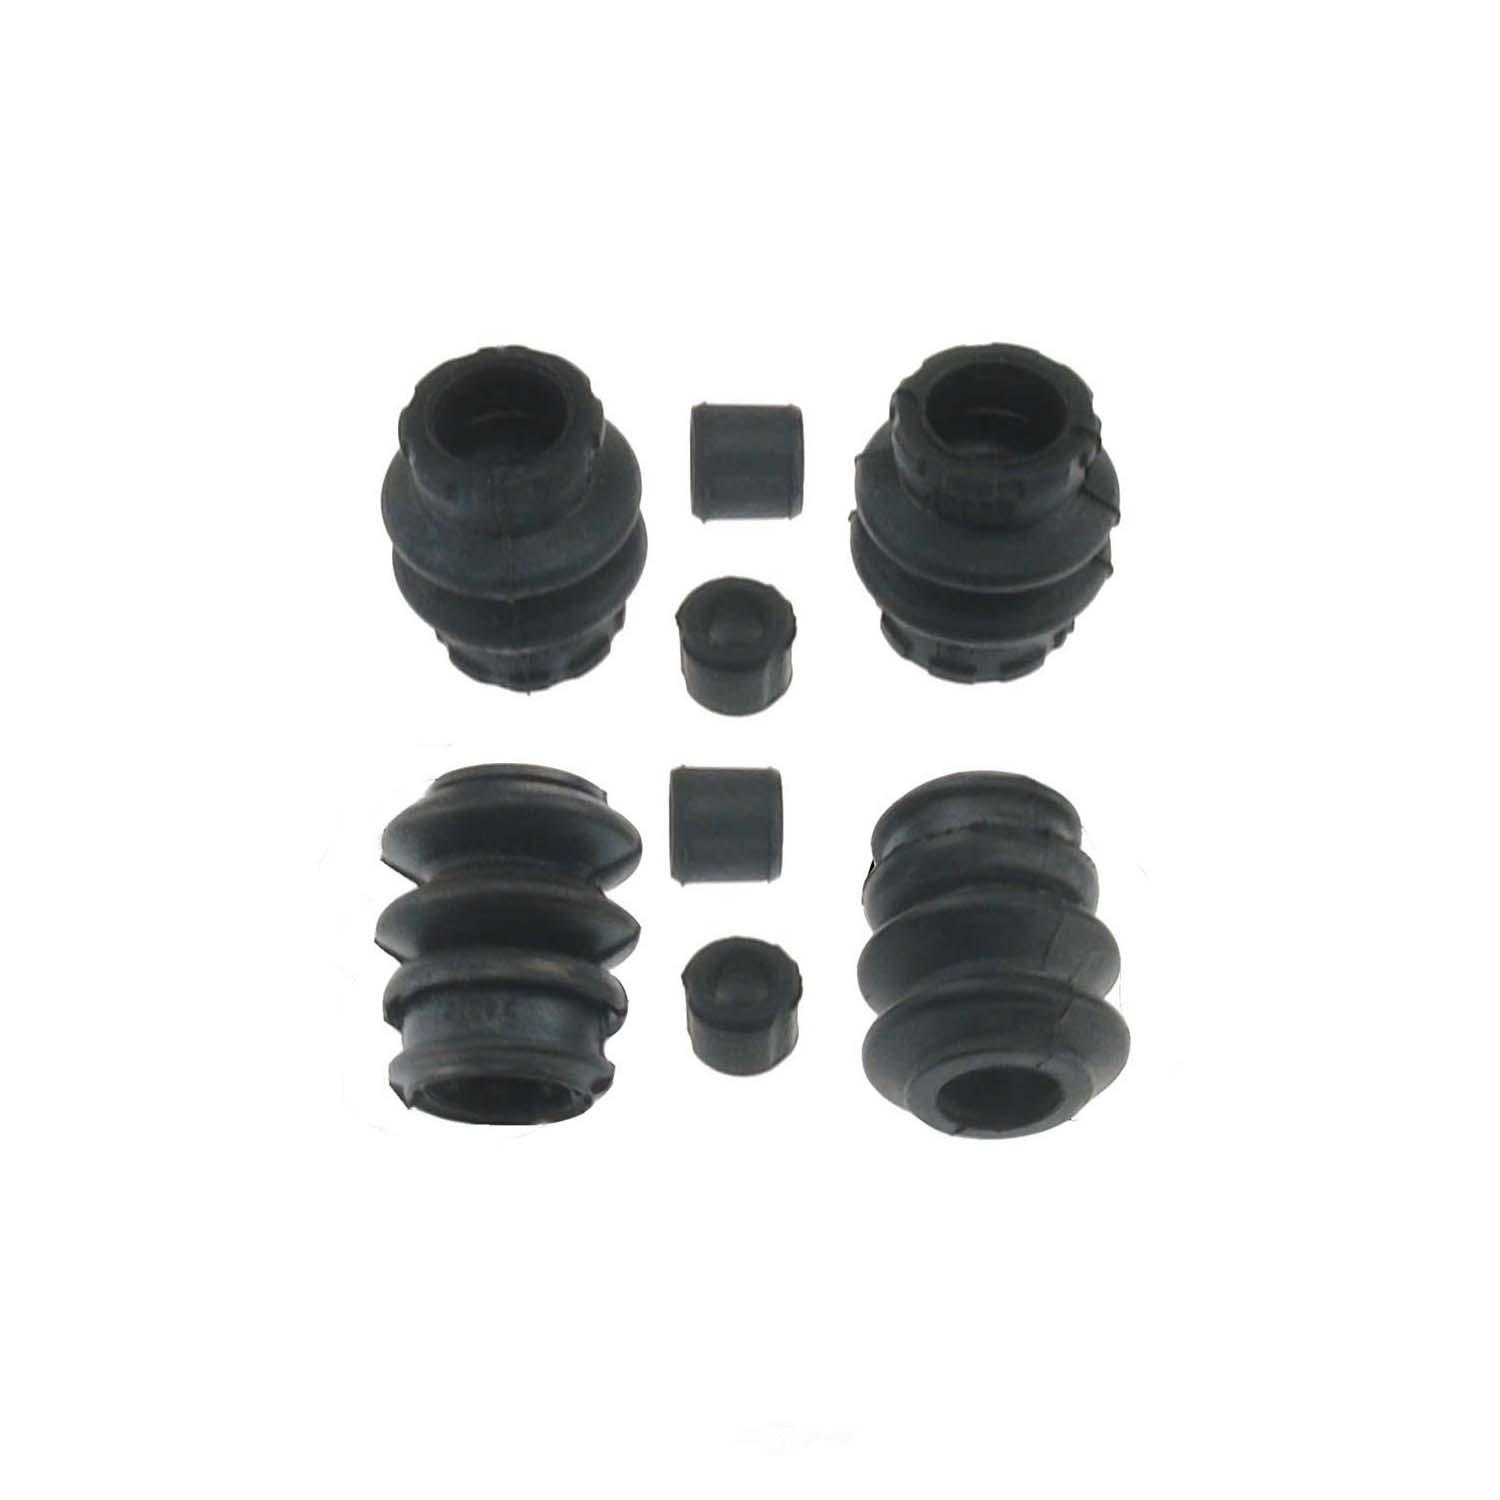 CARLSON QUALITY BRAKE PARTS - Disc Brake Caliper Guide Pin Boot Kit (Front) - CRL 16172